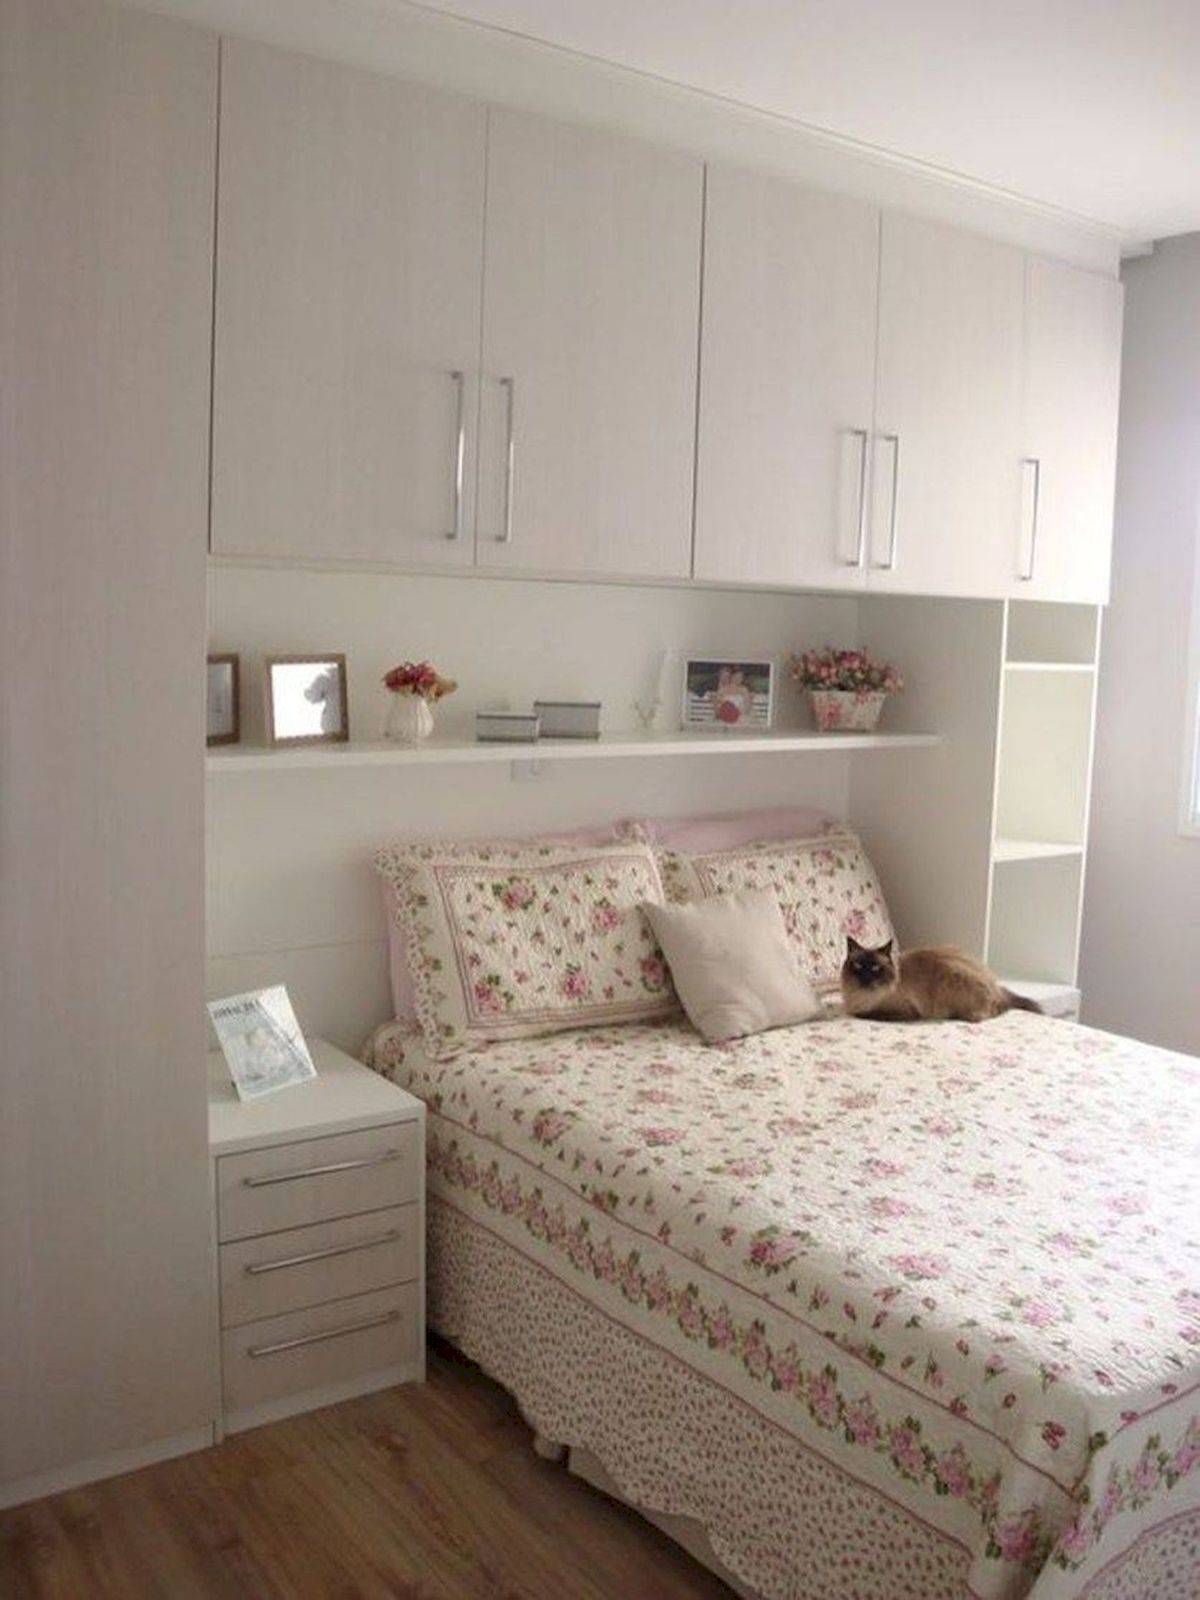 Stylish 30 Awesome Small Bedroom Decorating Ideas On A Budget Decorating A Small Bedroom Is Small Bedroom Ideas On A Budget Remodel Bedroom Small Bedroom